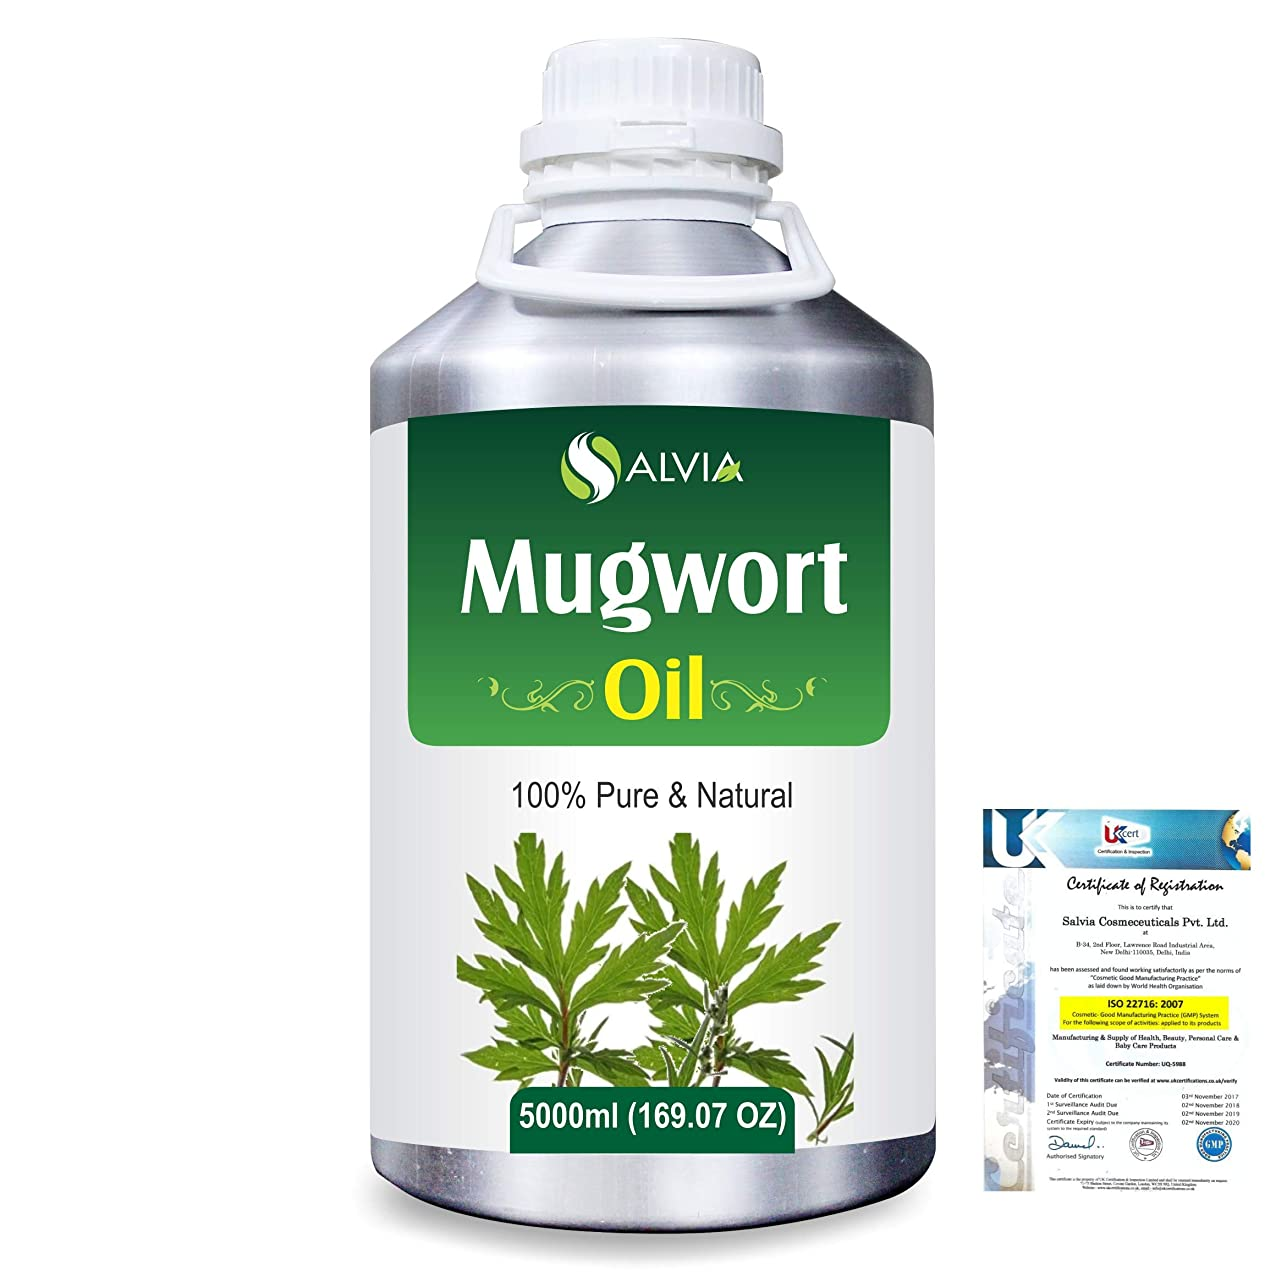 紳士気取りの、きざな船乗り貪欲Mugwort (Artemisia vulgaris) 100% Natural Pure Essential Oil 5000ml/169fl.oz.